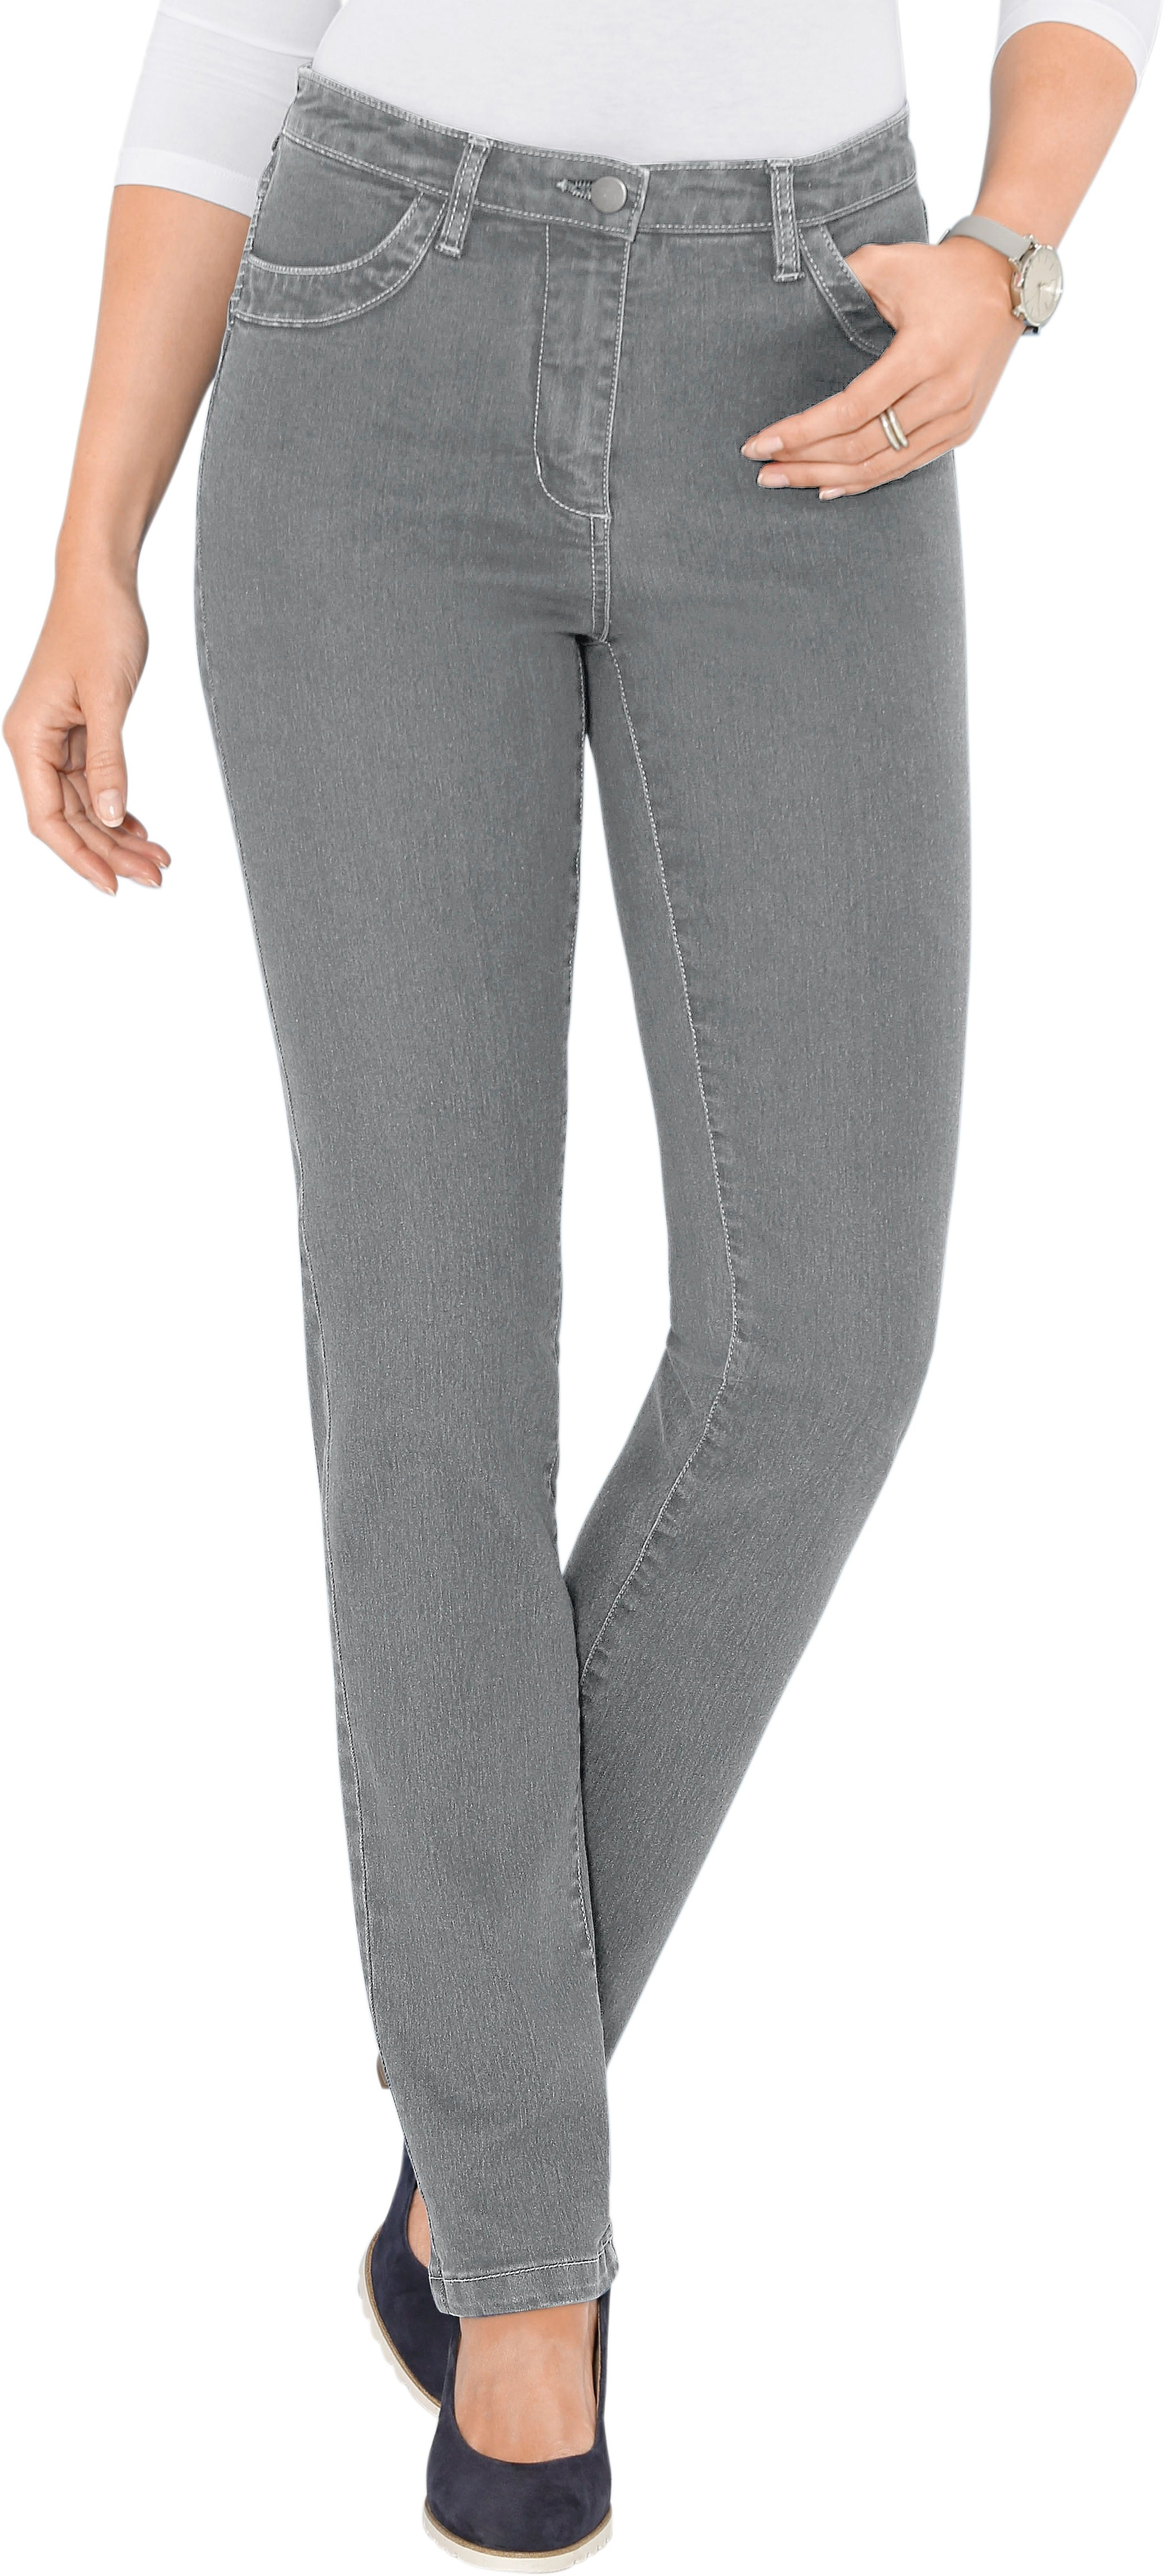 Classic Basics jeans in stretchkwaliteit online kopen op otto.nl